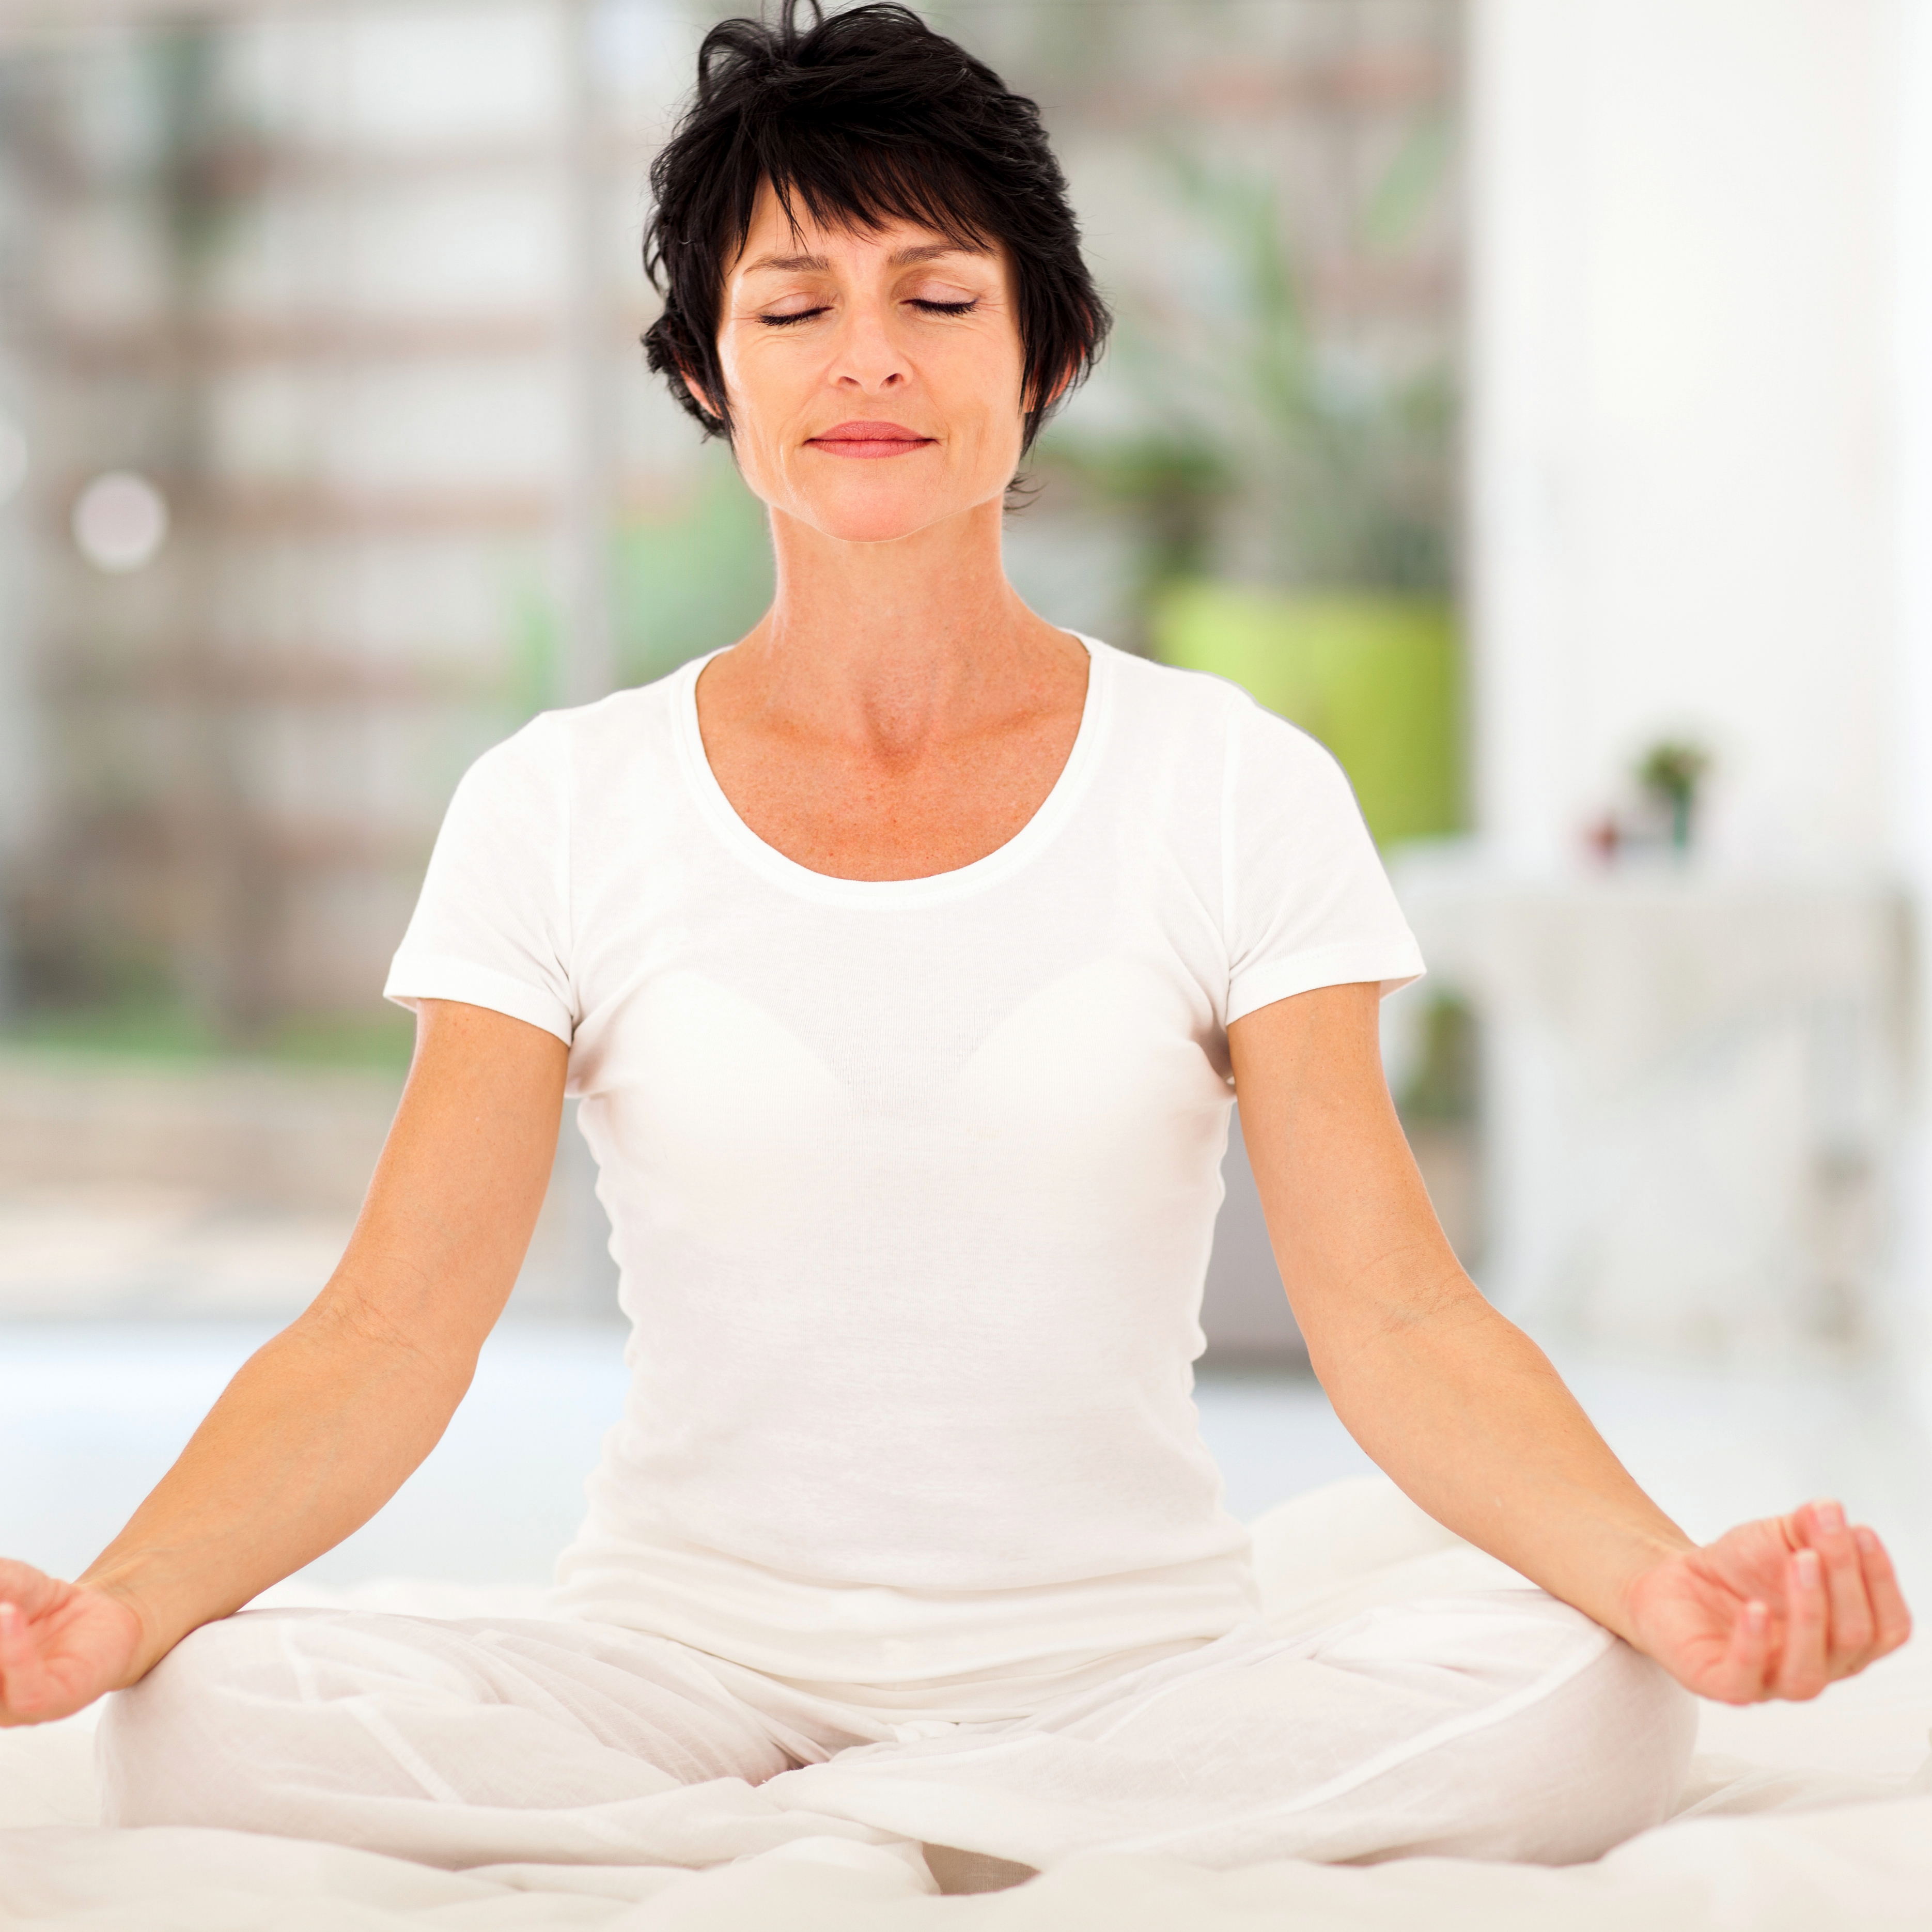 Middle-aged woman meditating on bed at home